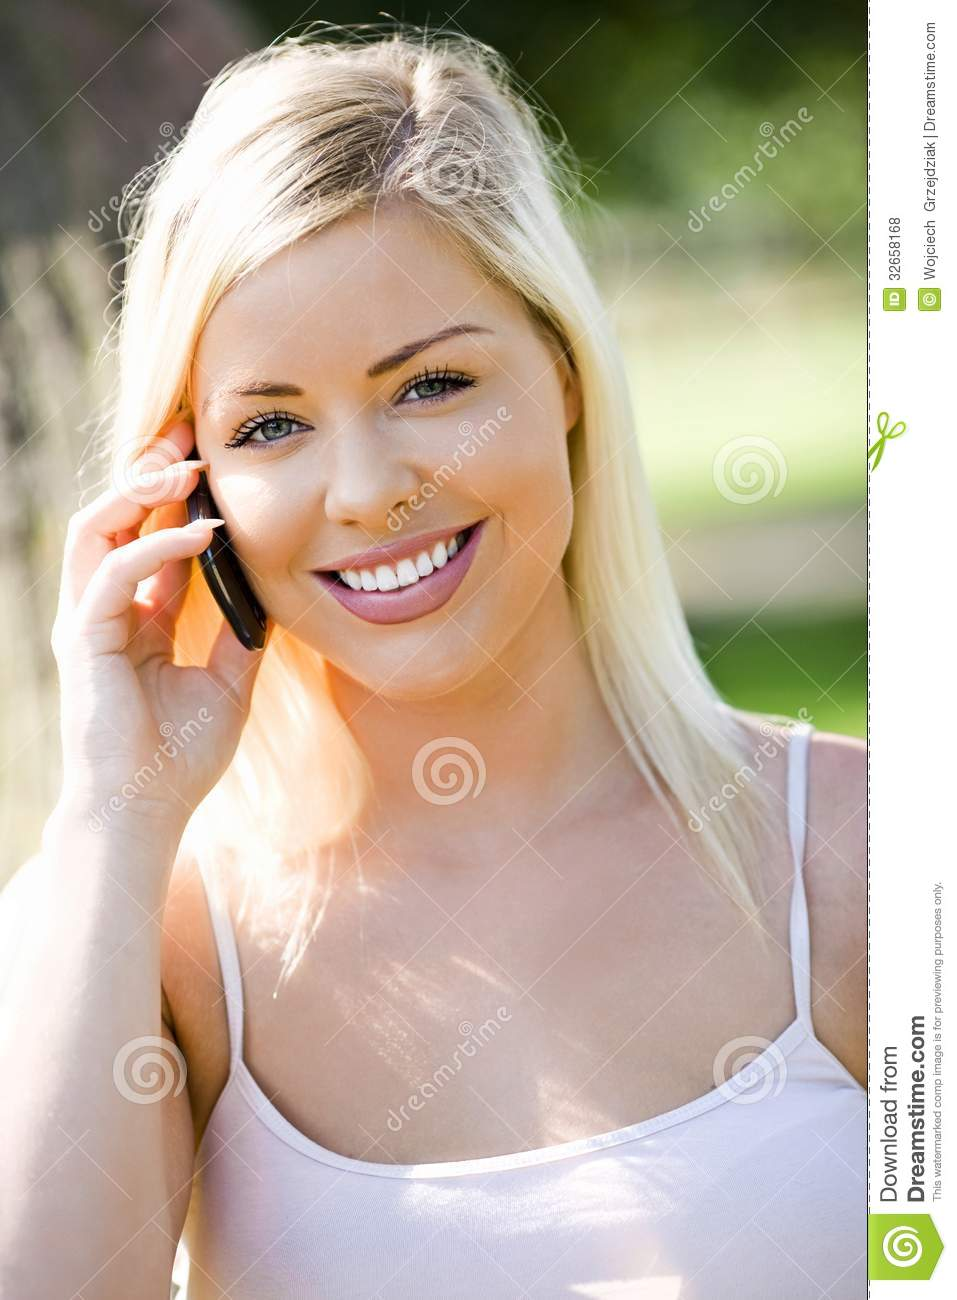 Laughing girl on smartphone royalty free stock photos image